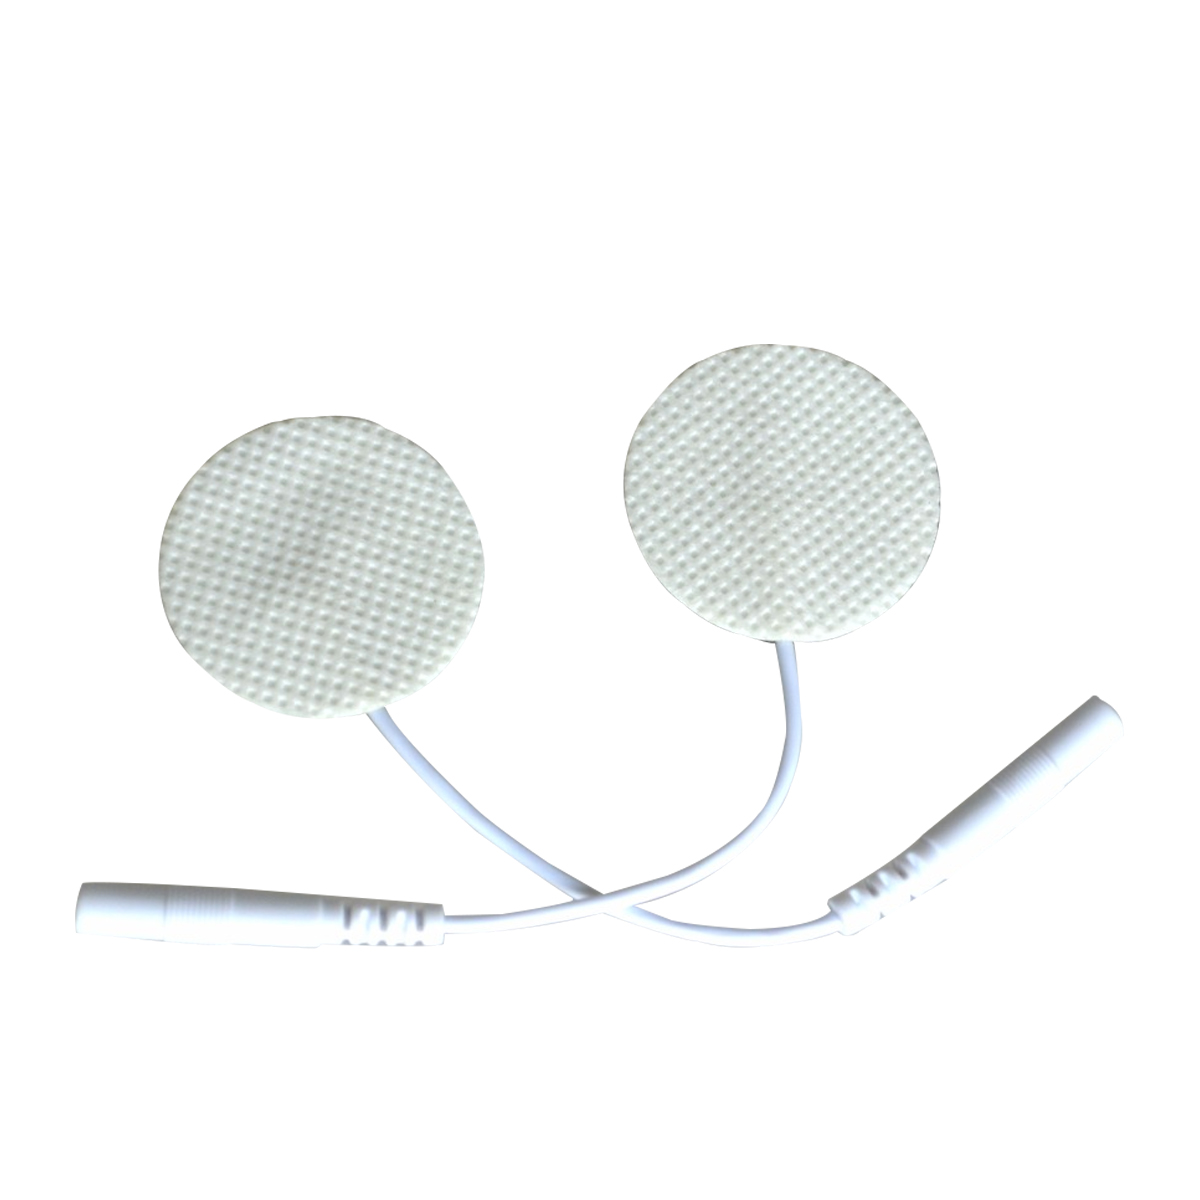 Electrode Round Massager Pads 50 Pairs/Pack Nonwoven TENS Therapy Circle With Pin Wire Silicone Adhesive Conductive PatchesElectrode Round Massager Pads 50 Pairs/Pack Nonwoven TENS Therapy Circle With Pin Wire Silicone Adhesive Conductive Patches